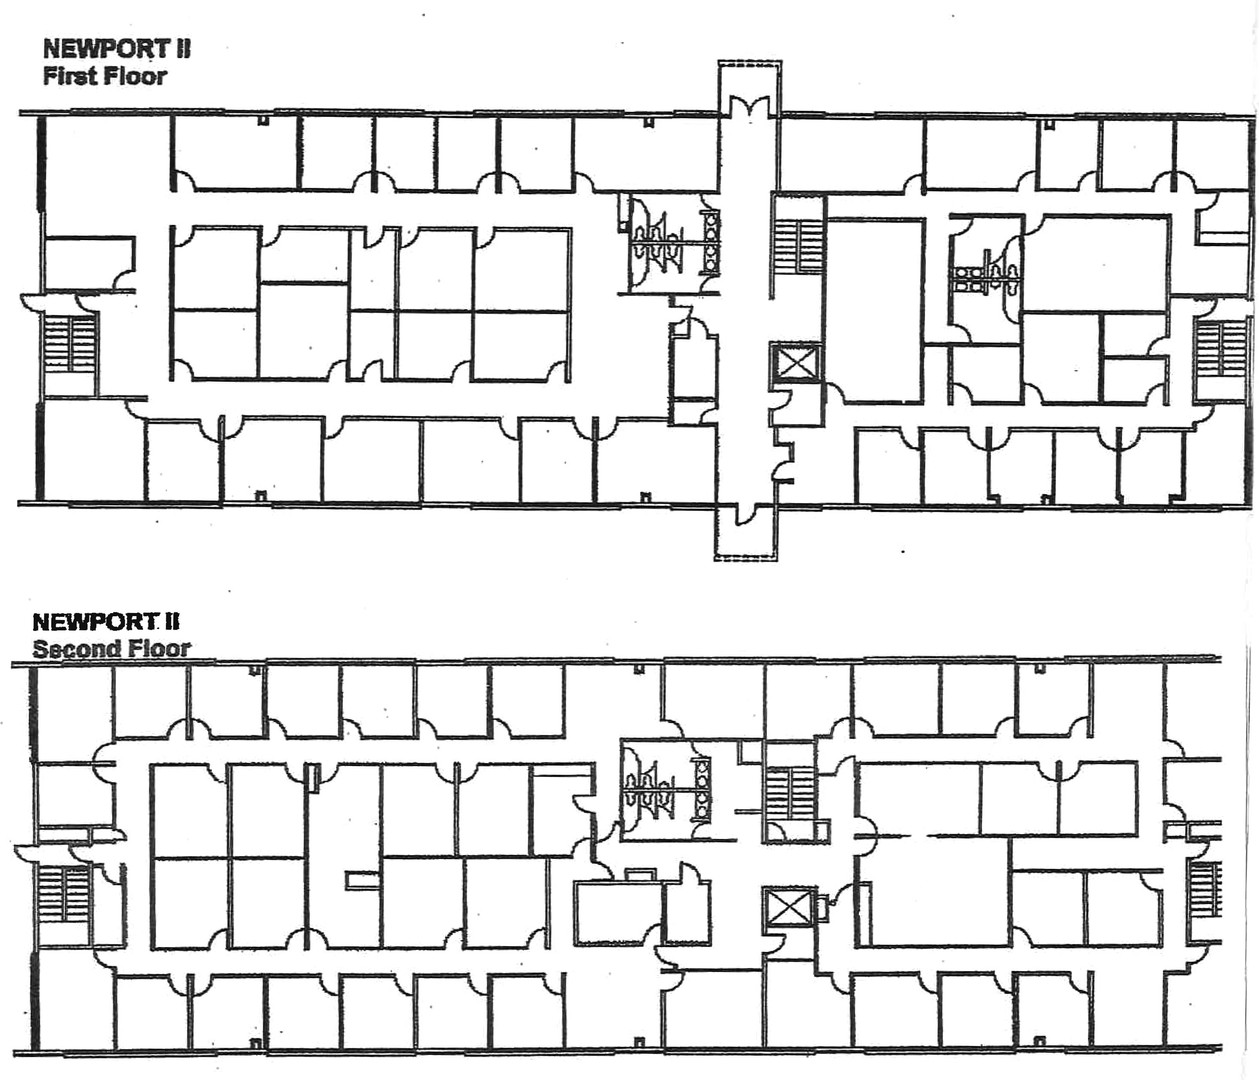 NP 2 Floor Plan